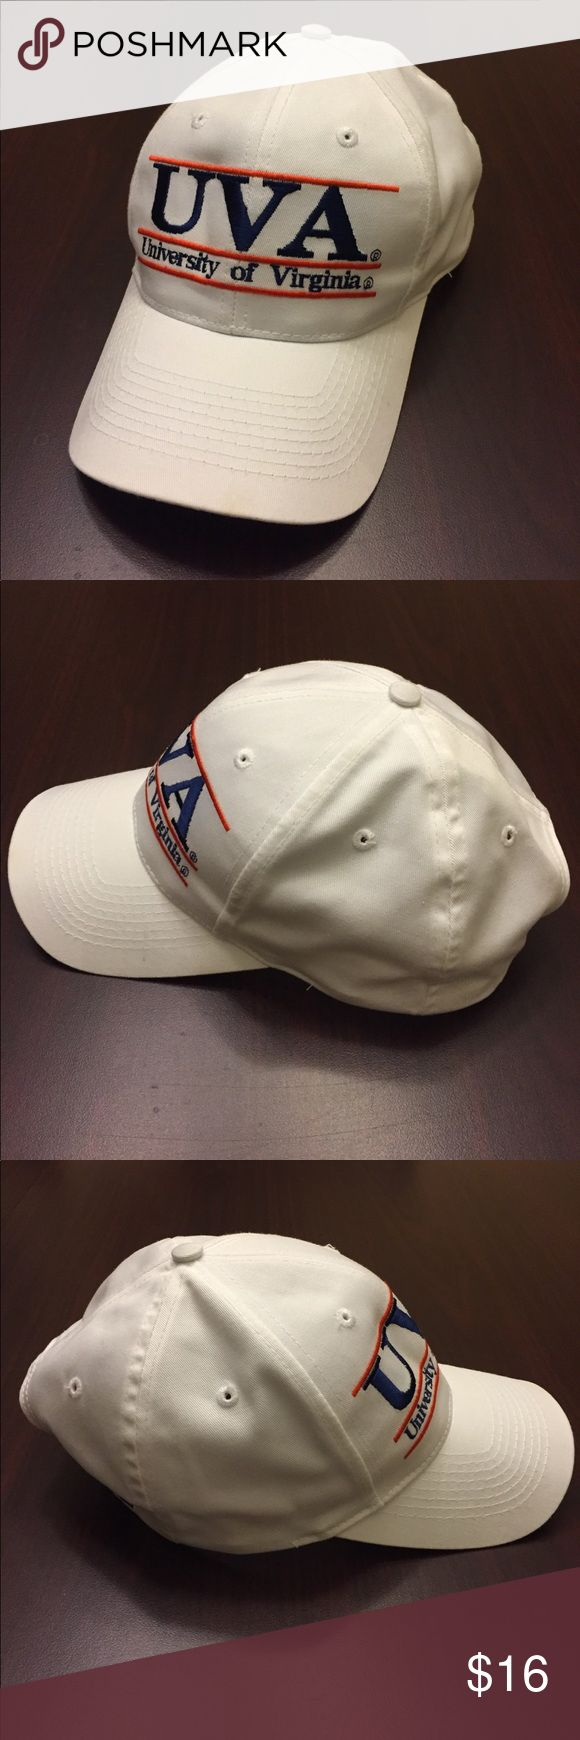 """Vintage UVA The Game by Russell Athletic SnapBack Very good condition, gently worn, white with UVA University of Virginia stitched across the front and """"The Game"""" logo stitched on back left side, one size with a snapback, made of 100% cotton material, Awesome vintage early 90's style SnapBack! Bundle for an Extra Discount! The Game by Russell Athletic Accessories Hats"""